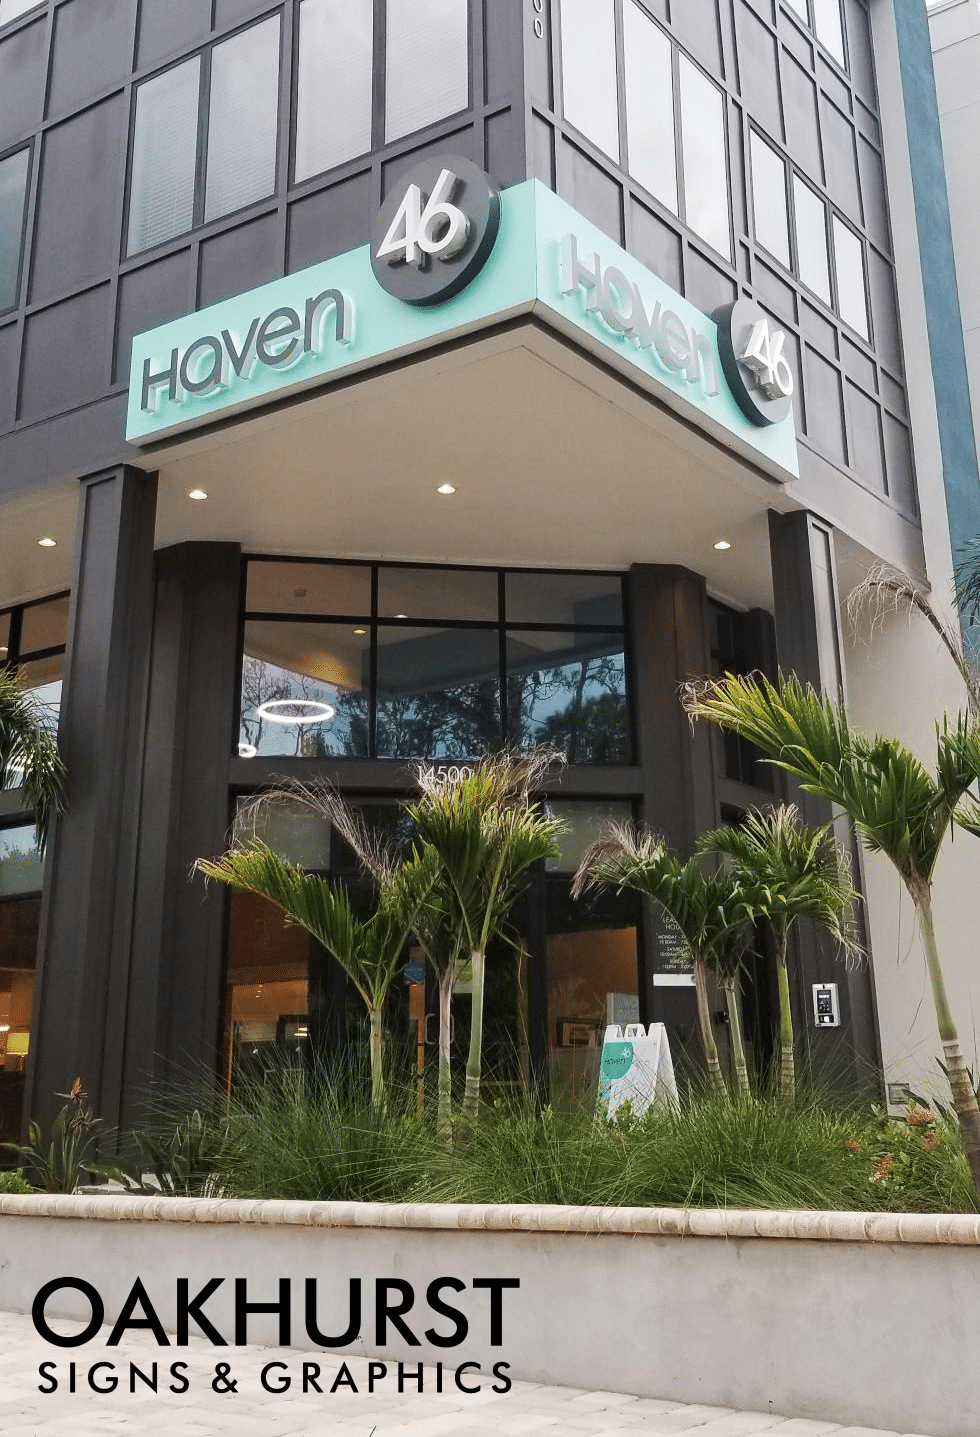 Haven 46 channel letter sign on tall building